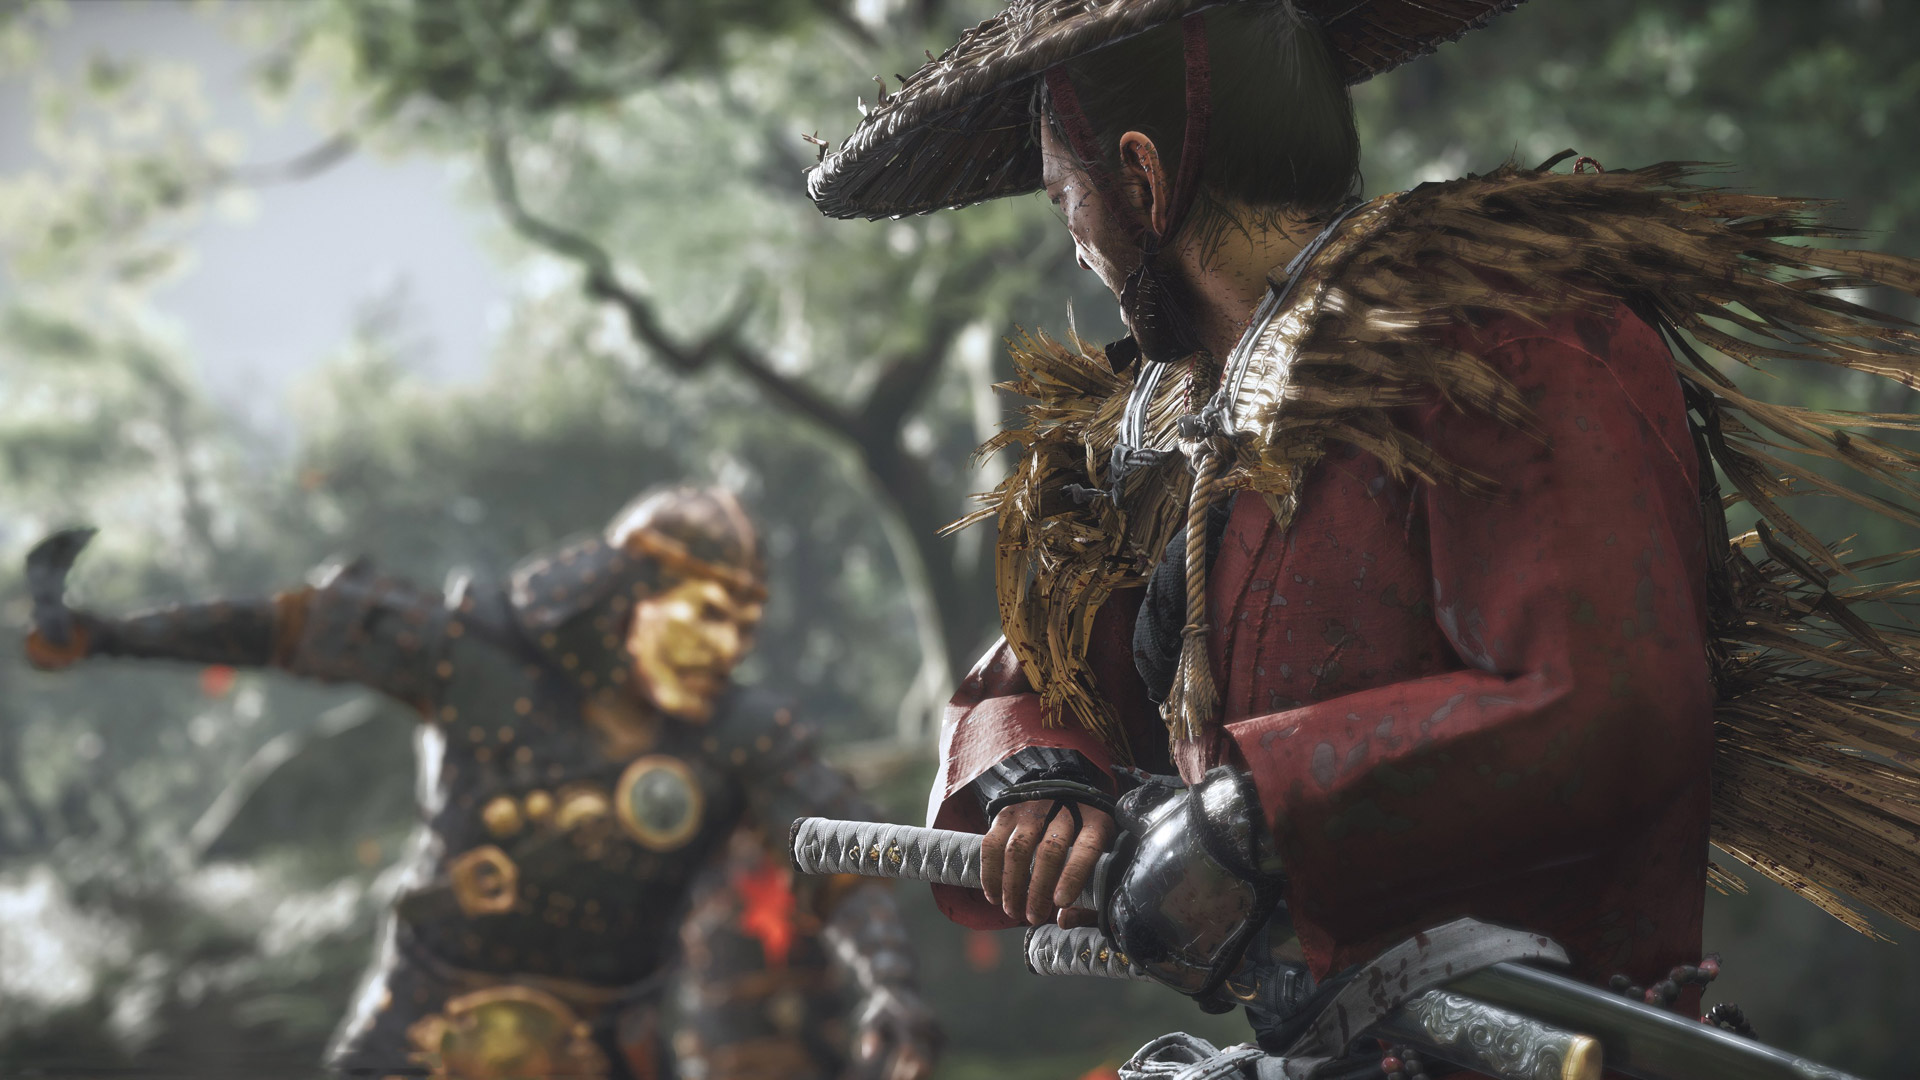 Free Ghost of Tsushima Wallpaper in 1920x1080